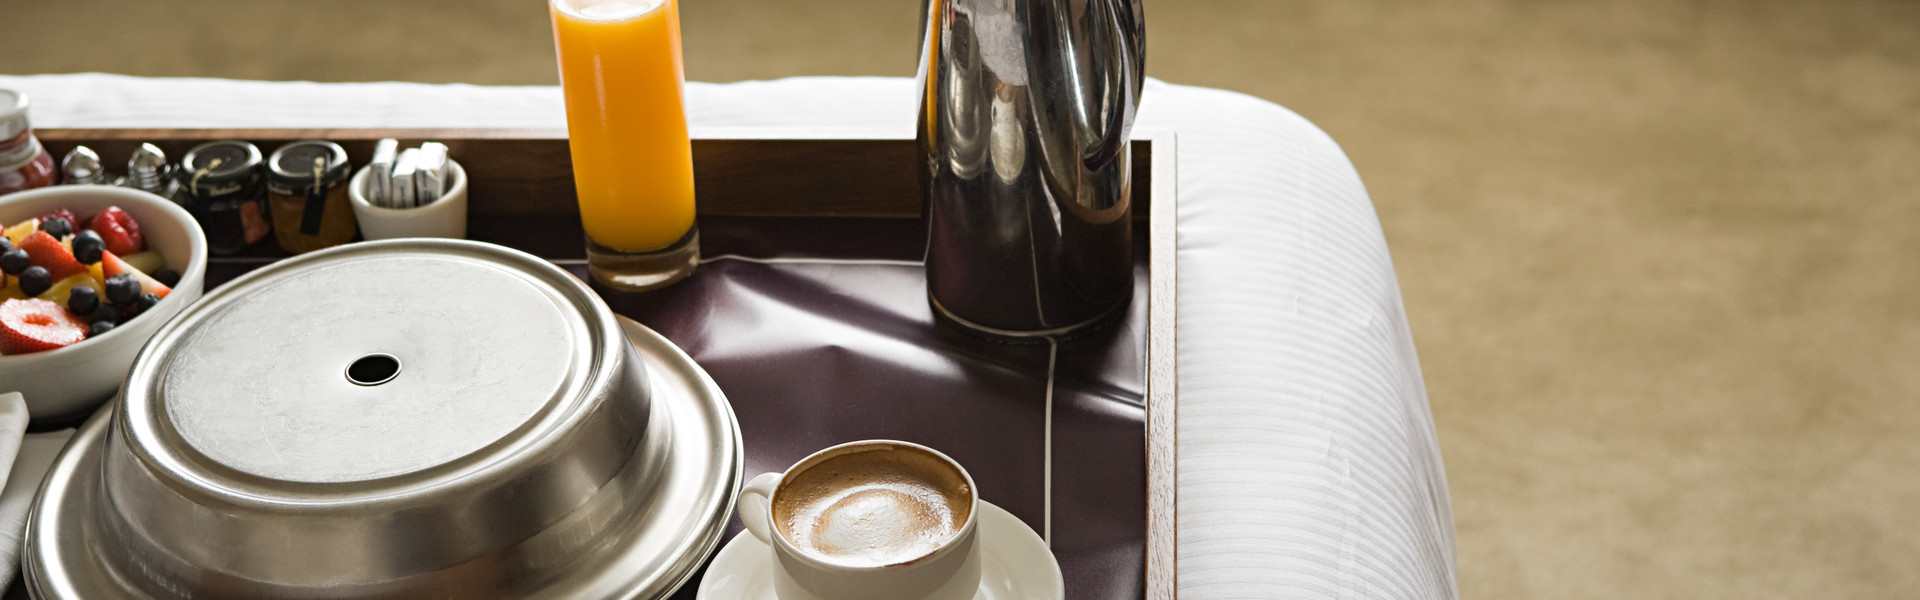 Room Service Near I Drive | Room Service at Westgate Palace Resort | Hotels in Orlando Florida 32819